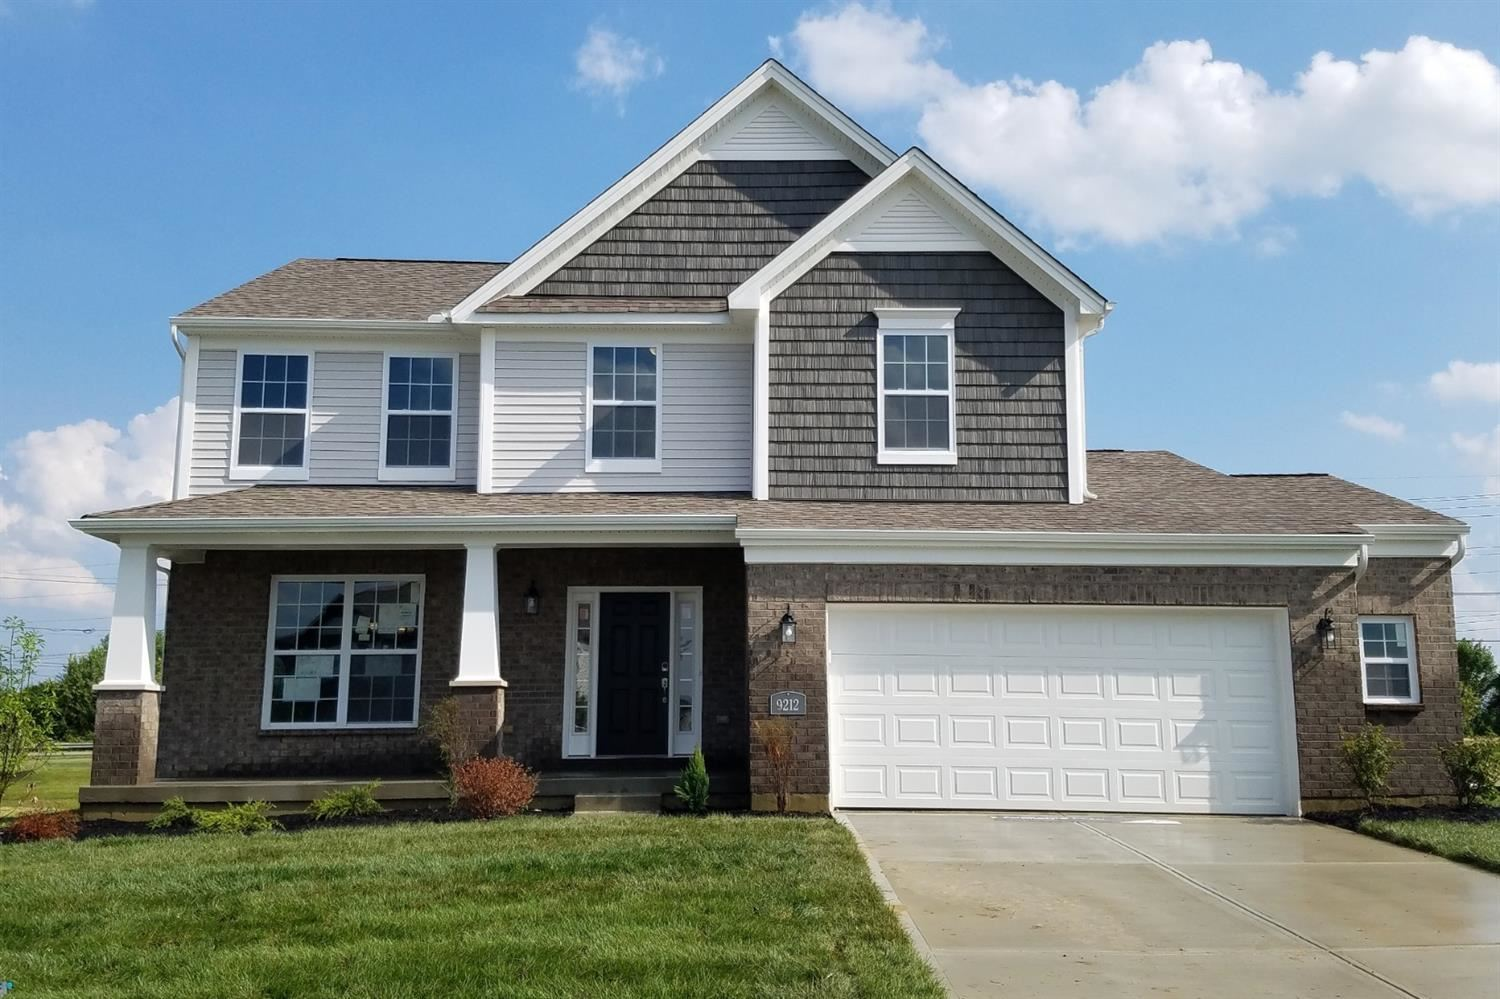 9212 W Meadow Drive #3, West Chester, OH 45069 - #: 1661810